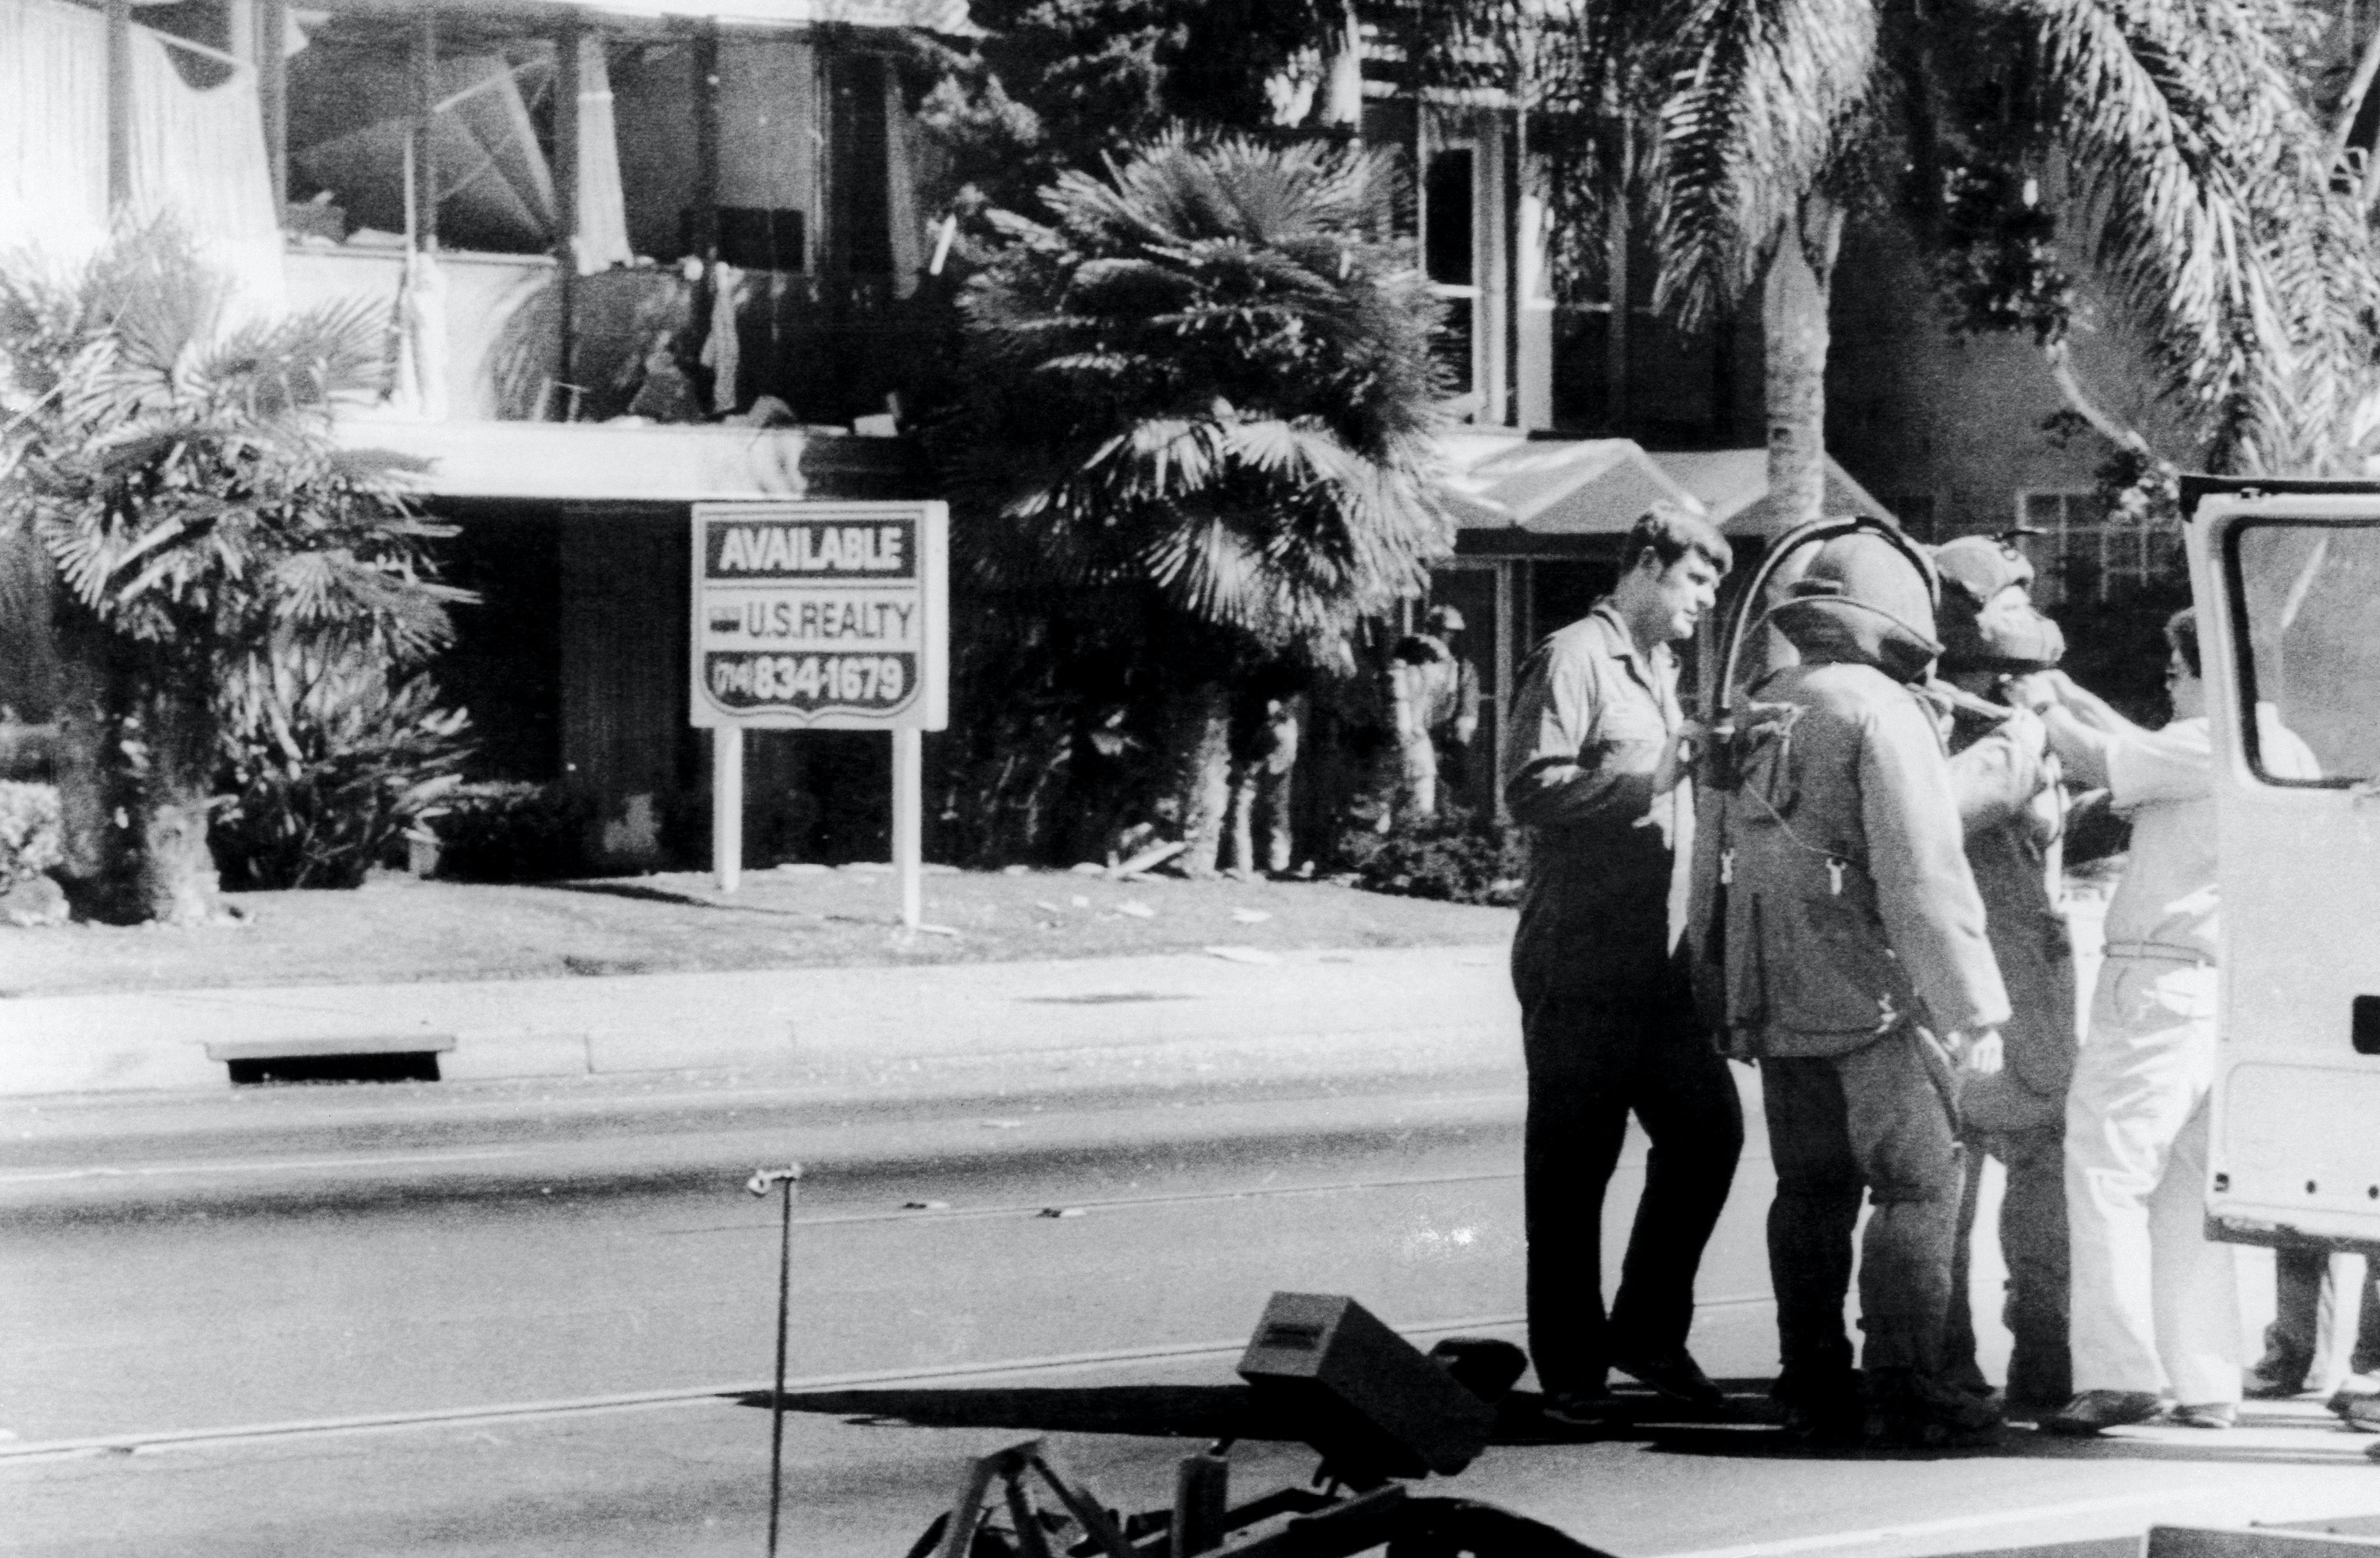 Members of the bomb squad prepare to examine the wrecked offices of the American-Arab Anti-Discrimination Committee offices in Santa Ana, Calif. The West Coast director of the ADC, Alex Odeh, was killed in the blast. On 12/5 the FBI announced it had begun an investigation of the recent attacks on ADC offices.